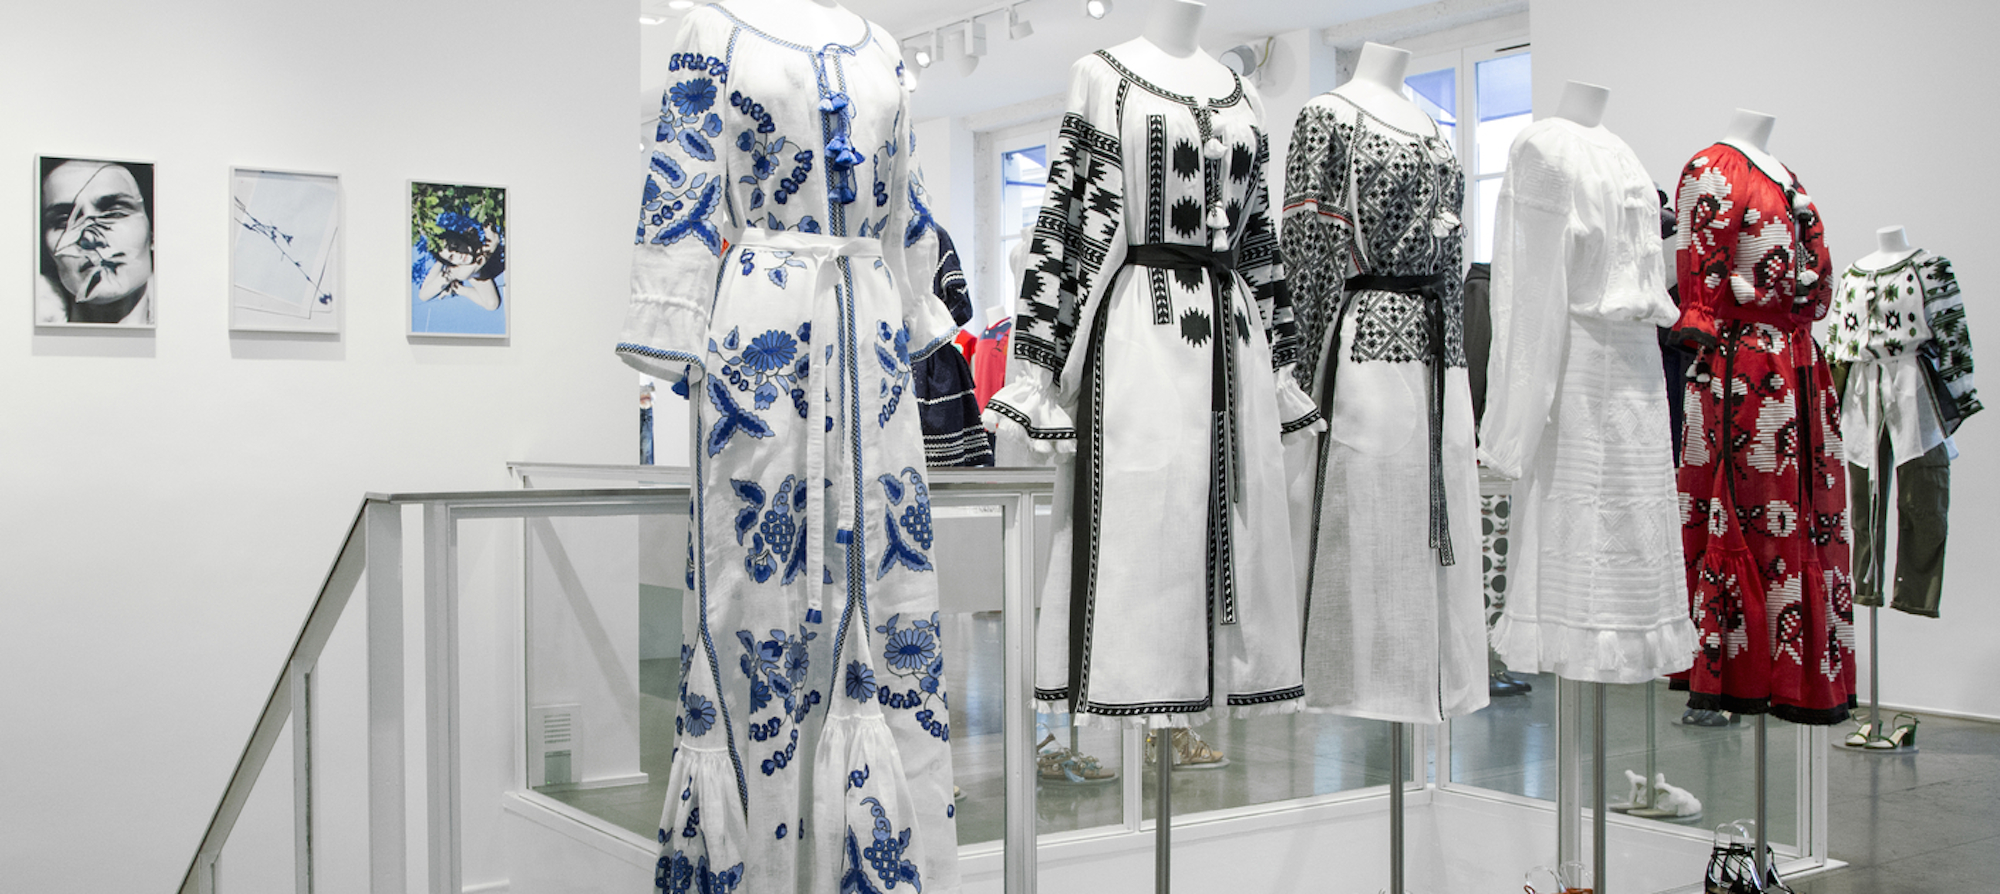 HiP Paris Blog says goodbye to Paris fashion institution Colette